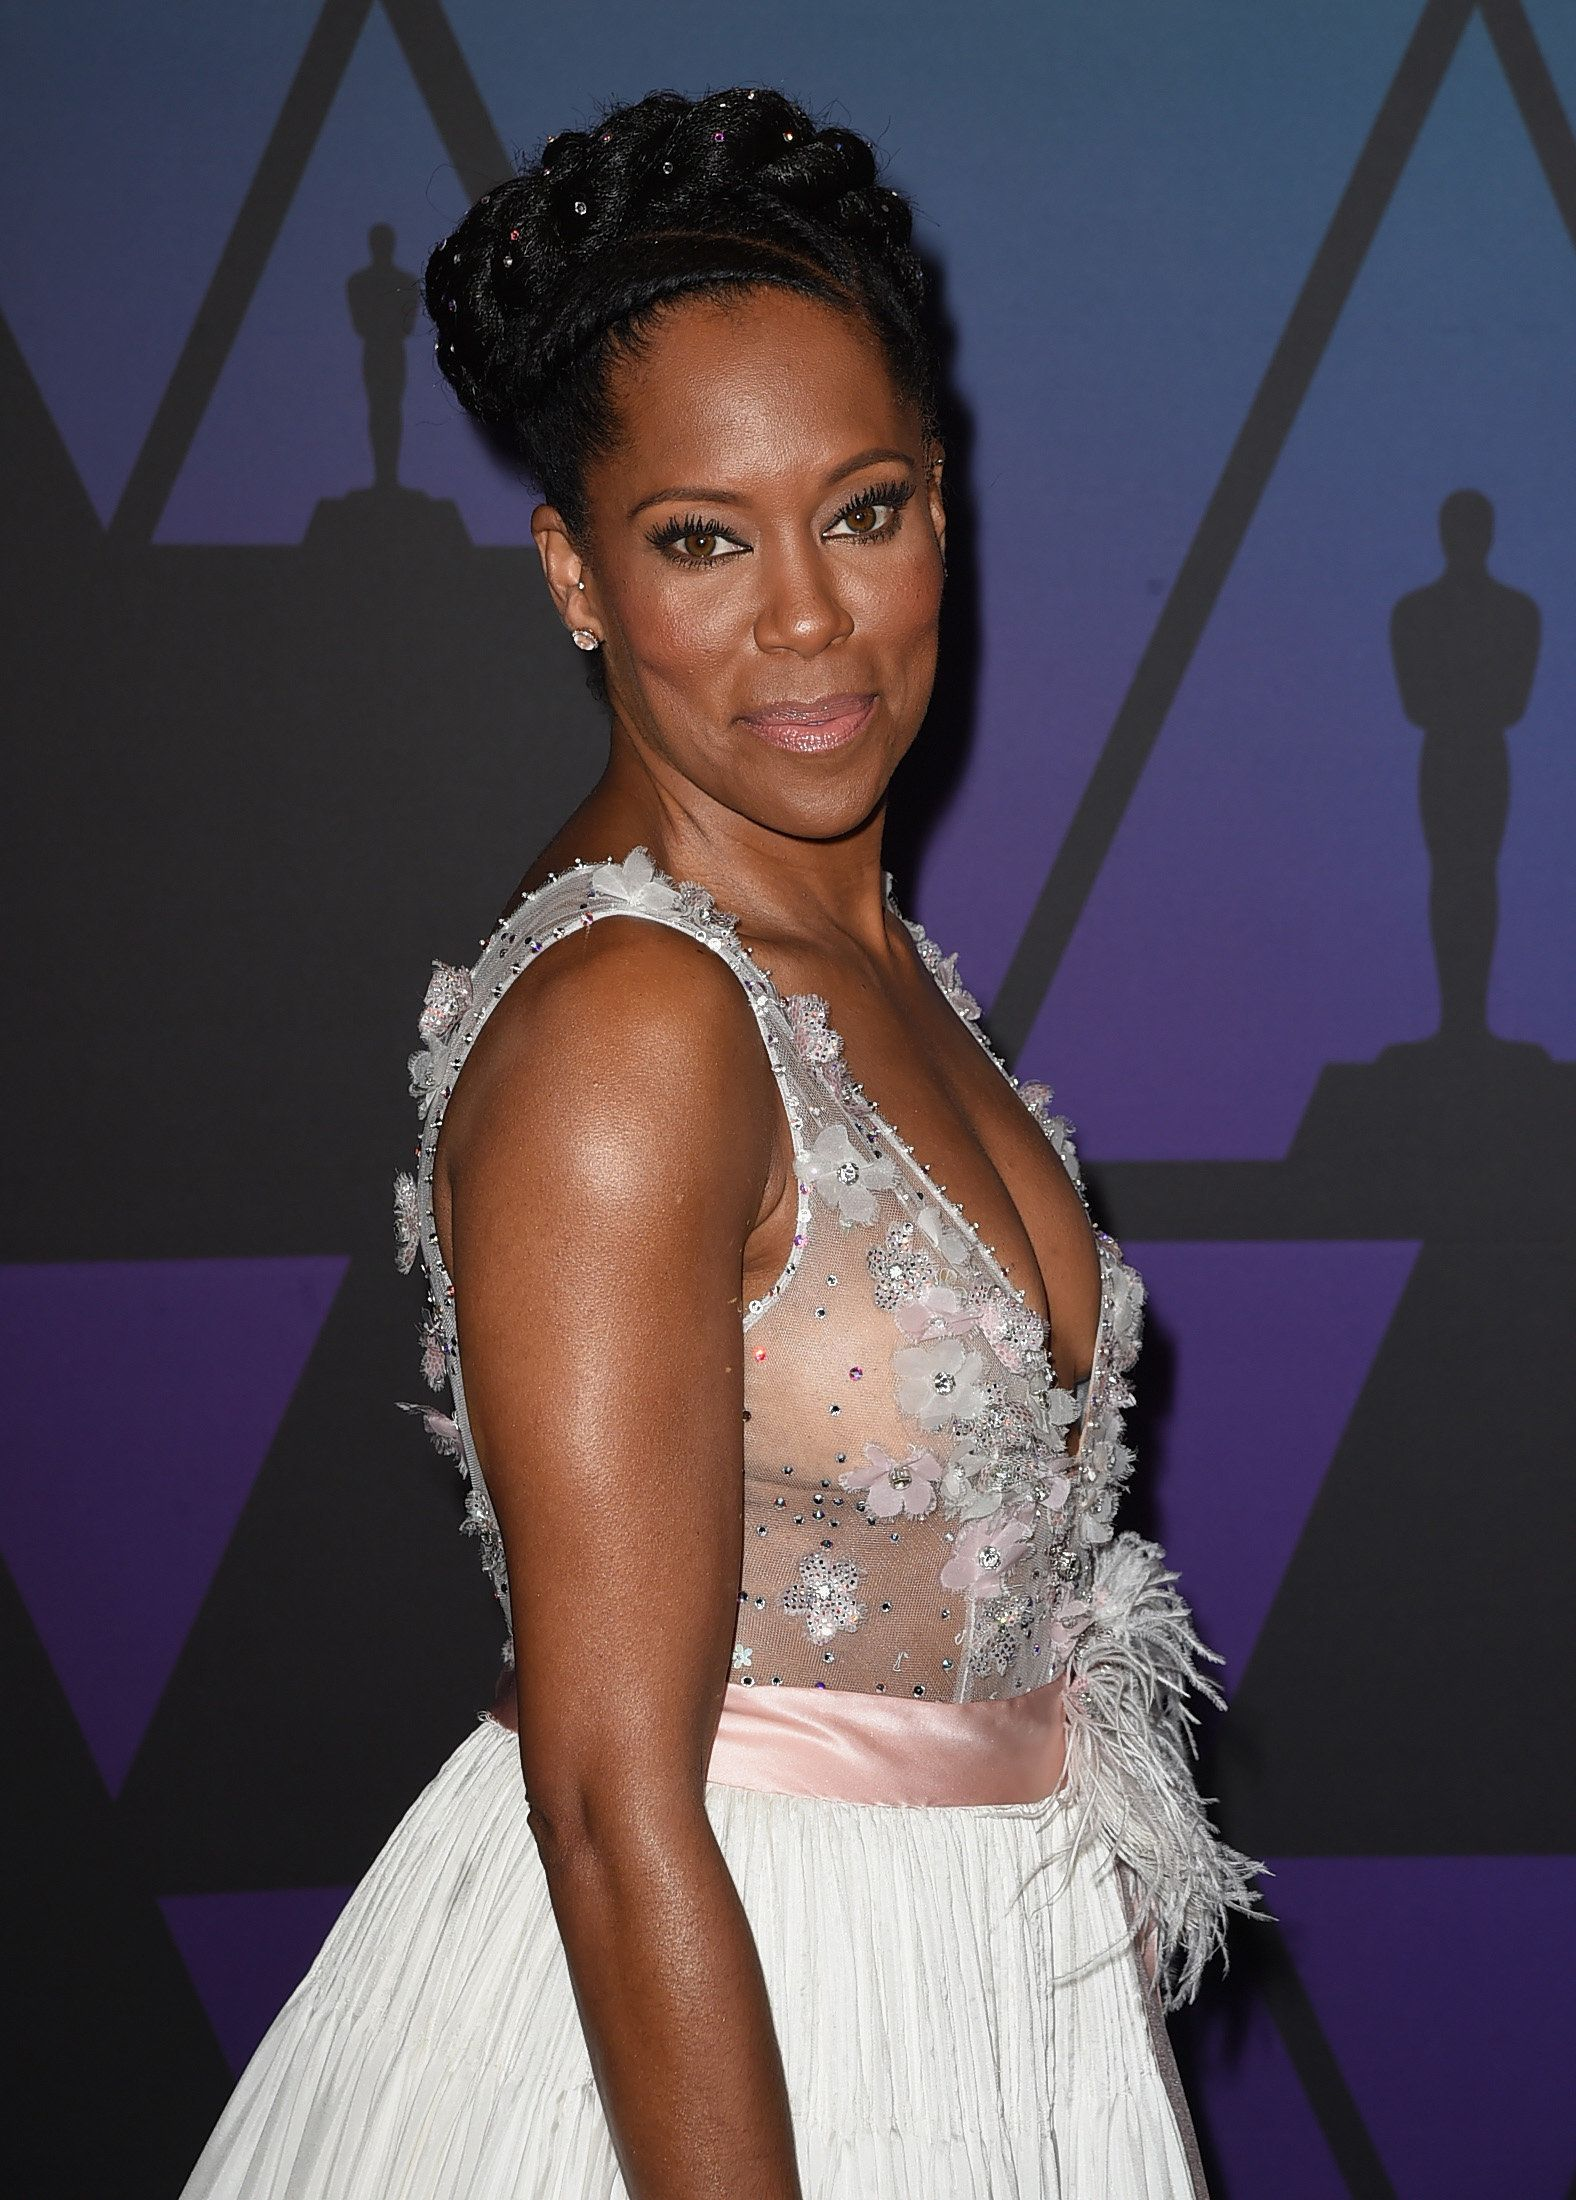 HOLLYWOOD, CA - NOVEMBER 18:  Regina King attends the Academy of Motion Picture Arts and Sciences' 10th annual Governors Awards at The Ray Dolby Ballroom at Hollywood & Highland Center on November 18, 2018 in Hollywood, California.  (Photo by Kevin Winter/Getty Images)